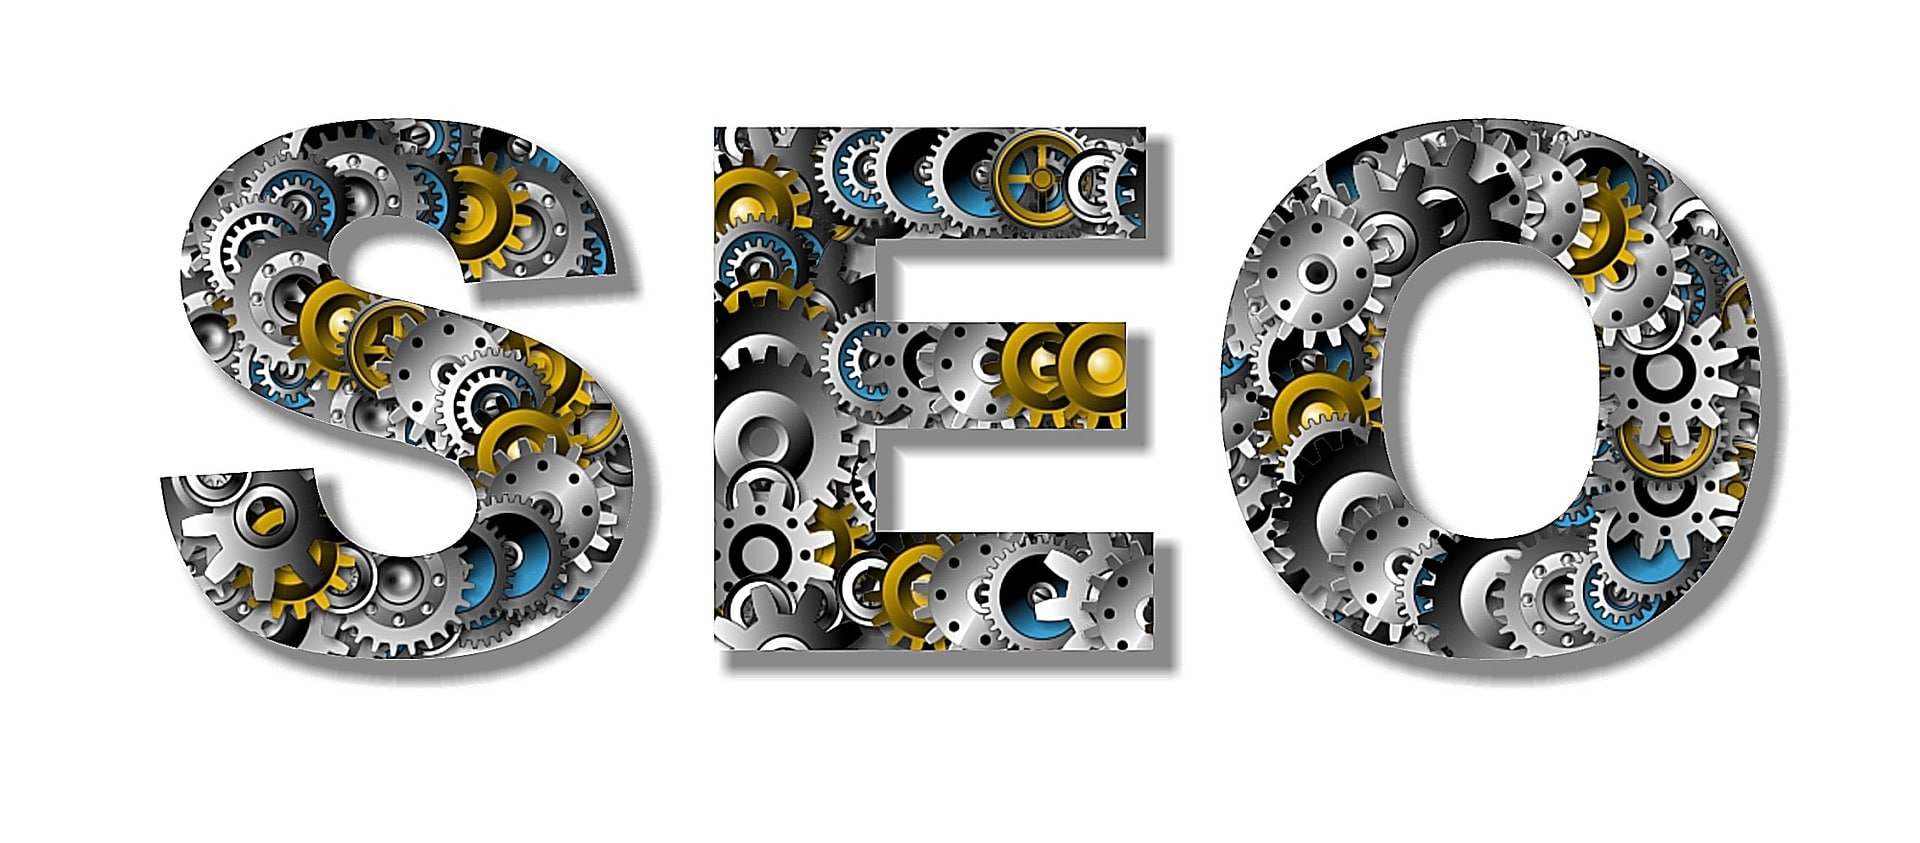 SEO with Gears For Google